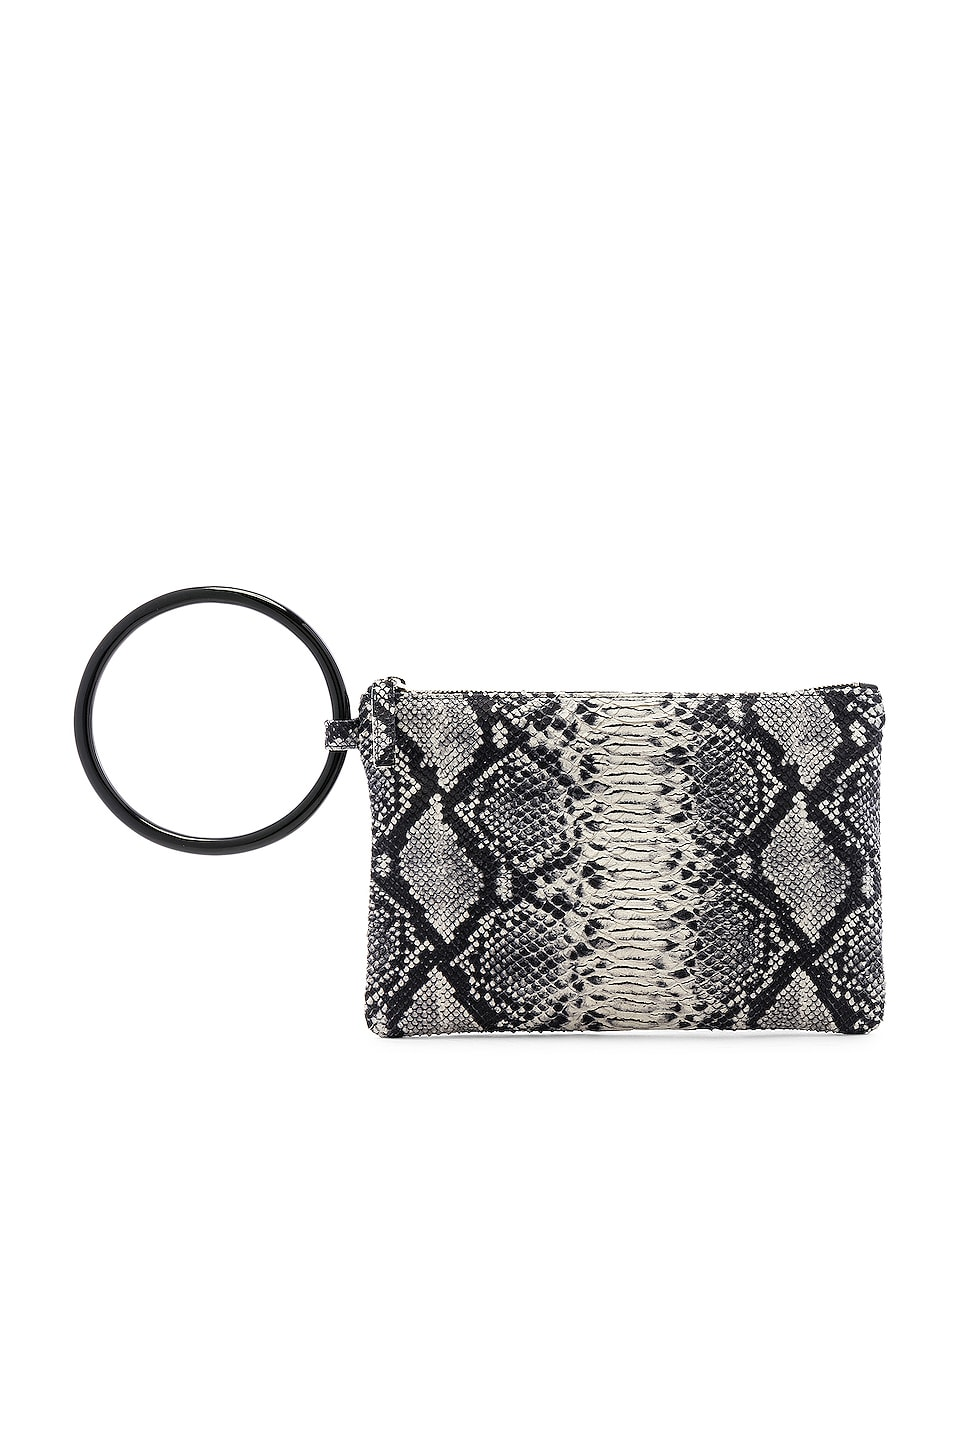 Oliveve Murphy Bracelet Clutch in Black & White Snake